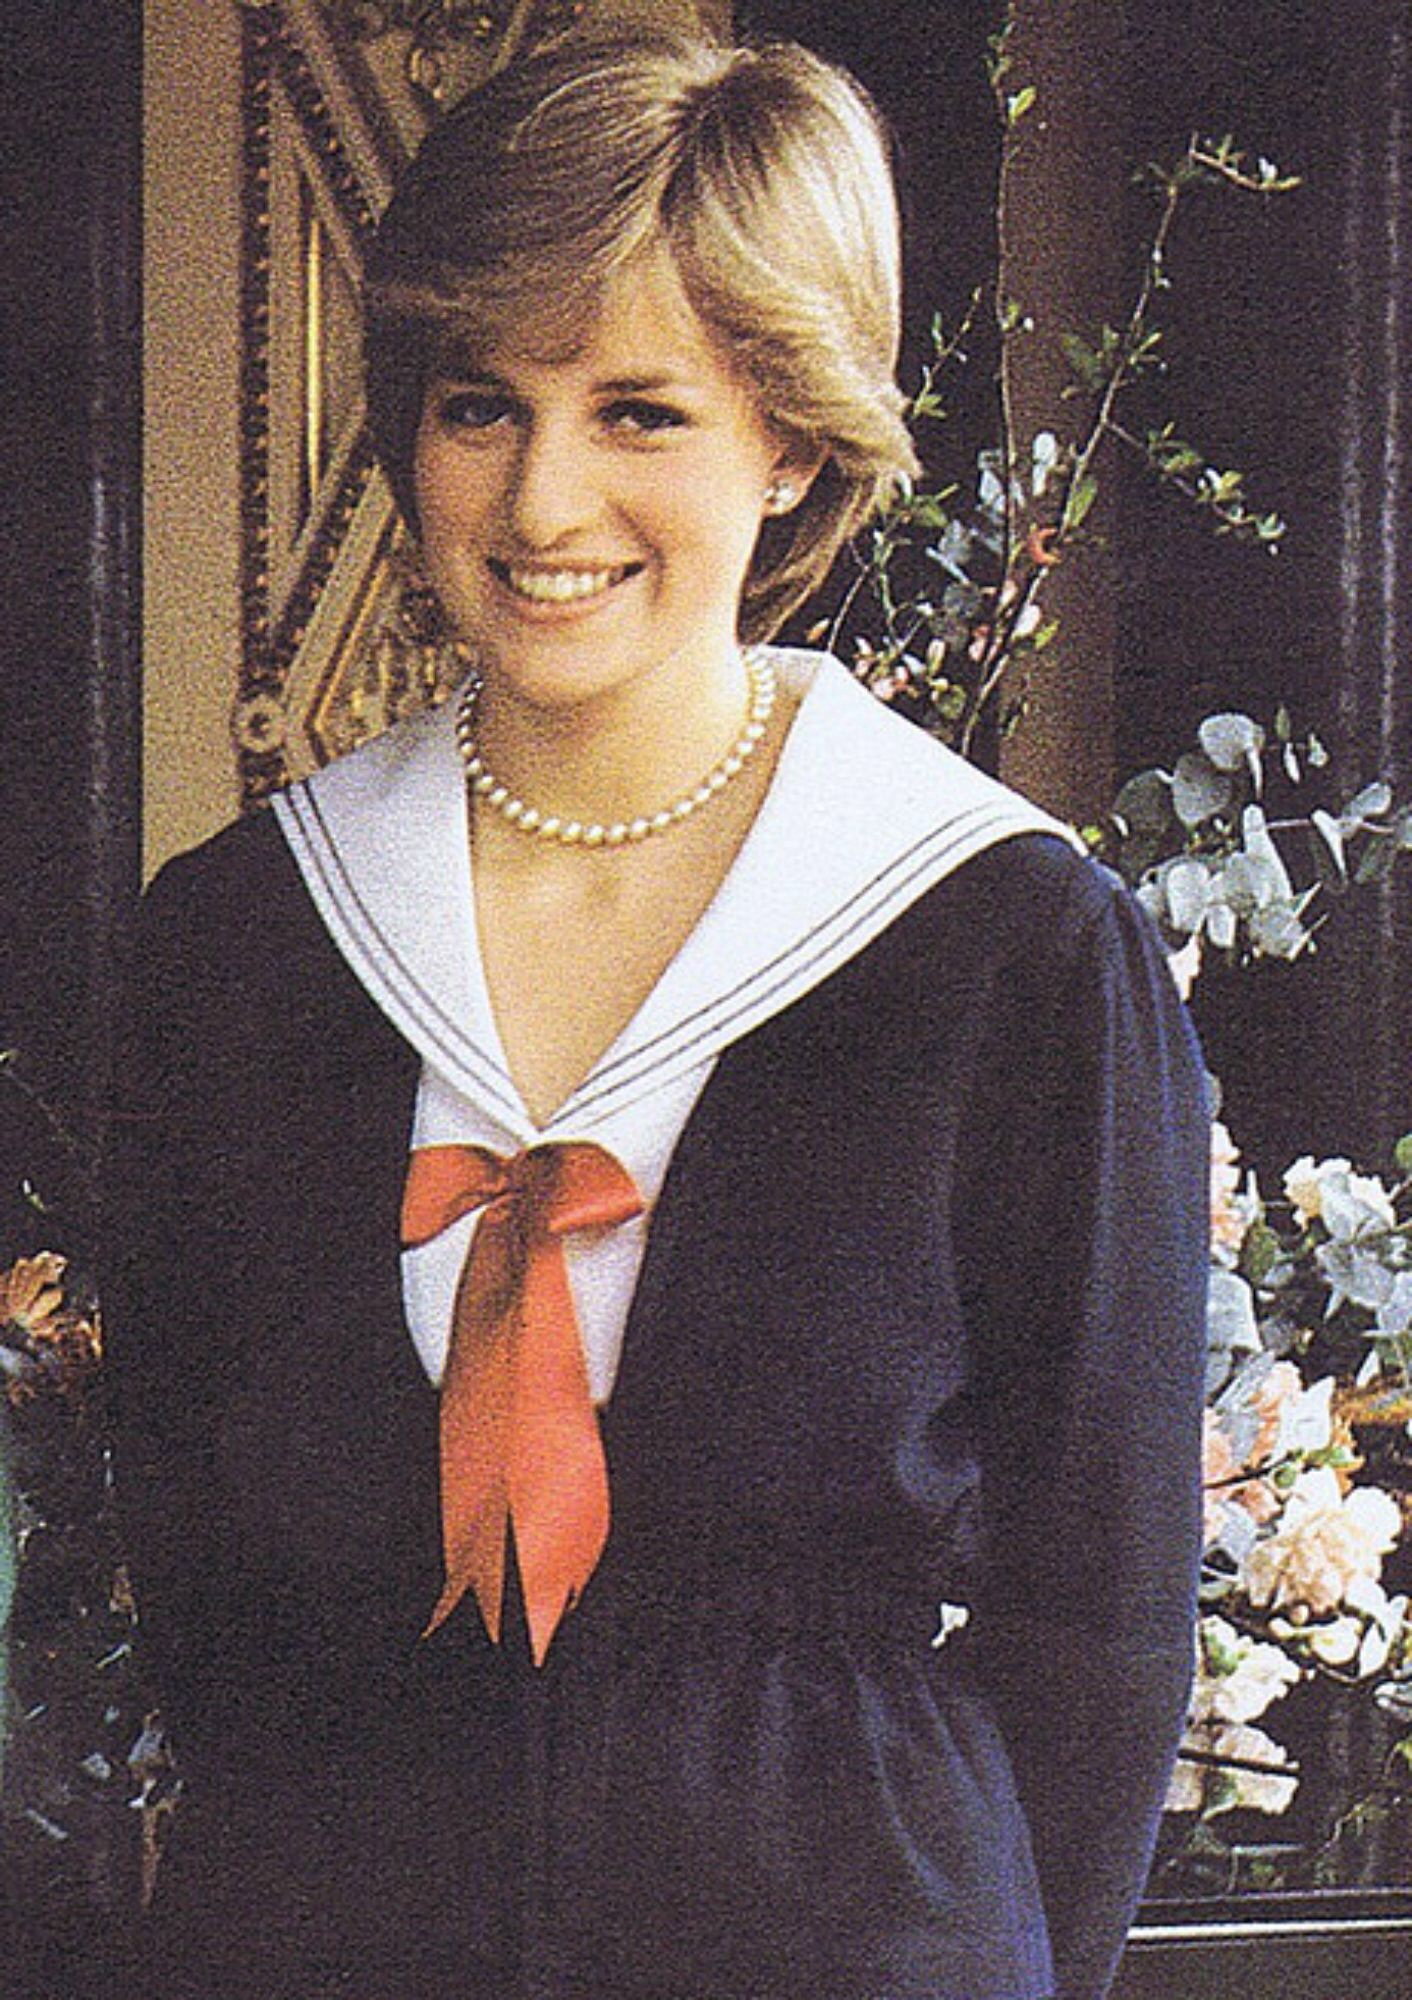 about lady diana spencer The late diana, princess of wales was born the honourable diana frances spencer on 1 july 1961 in norfolk she received the style lady diana spencer in 1975, when her father inherited his earldom lady diana spencer married the prince of wales at st paul's cathedral in london on 29 july 1981.